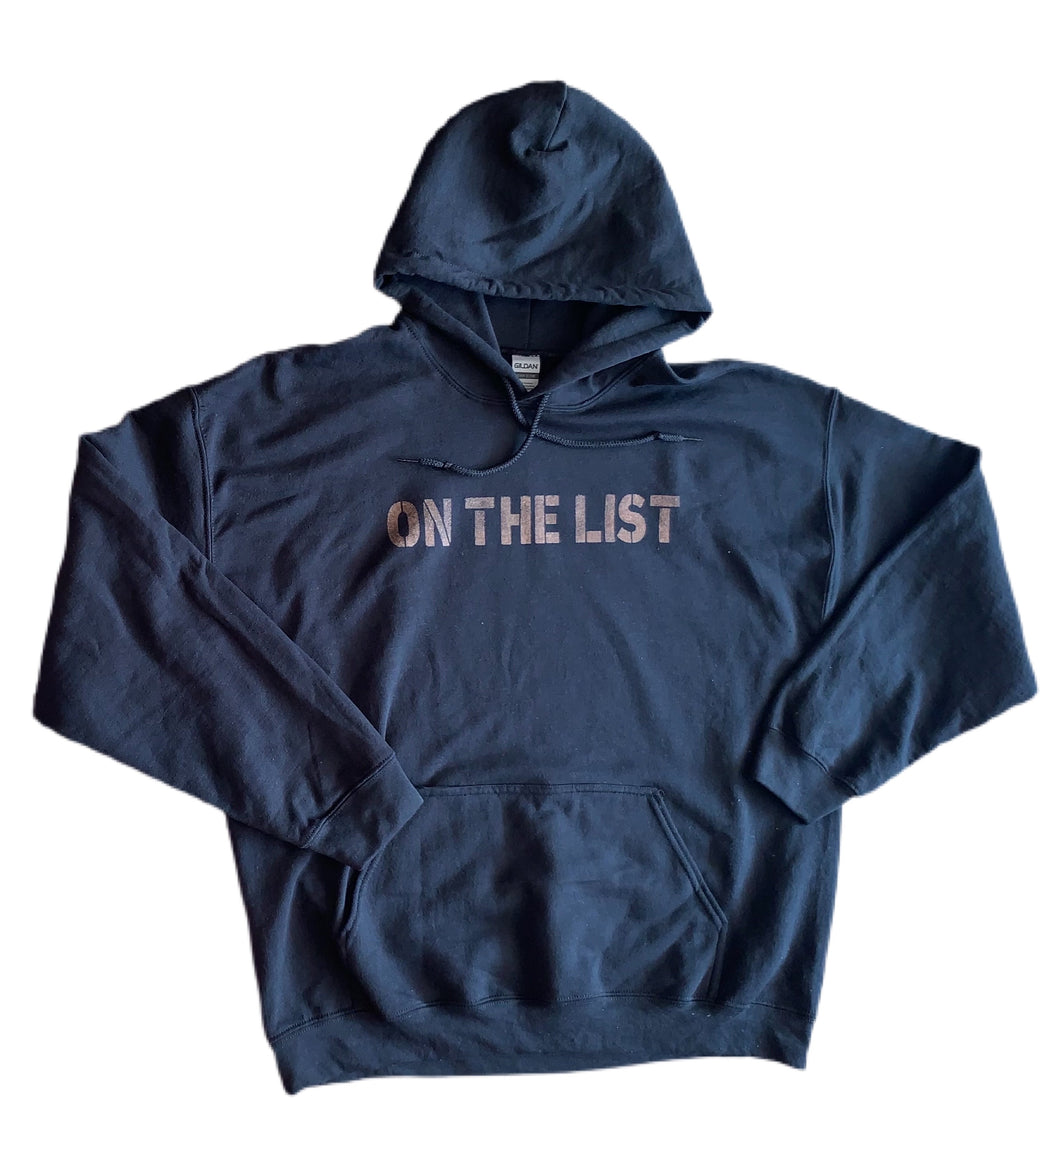 'On The List' Pullover Hoodie Sweatshirt